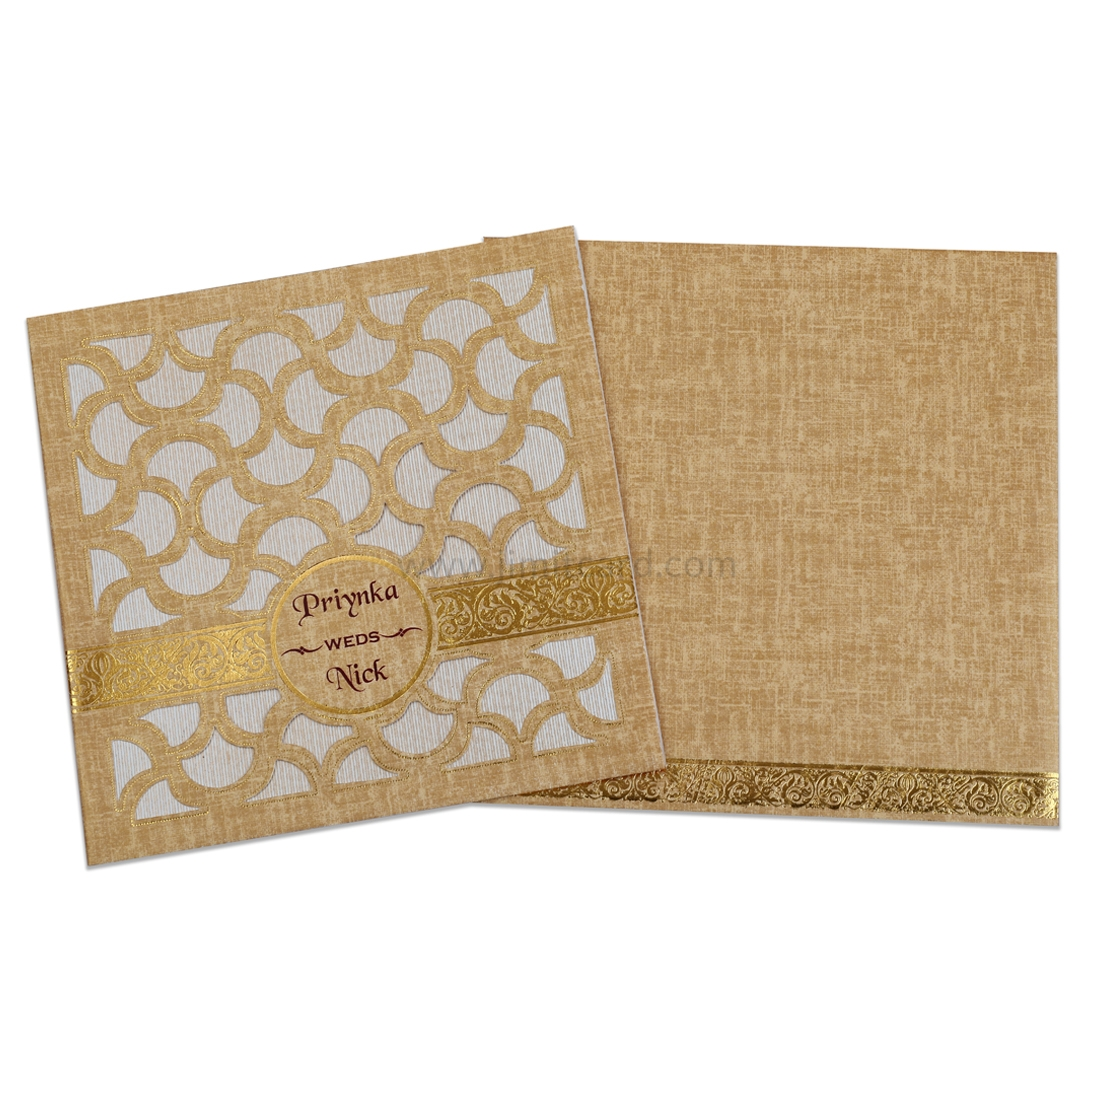 Beige Color Laser Cut Wedding Card with Golden Thick Strip -0